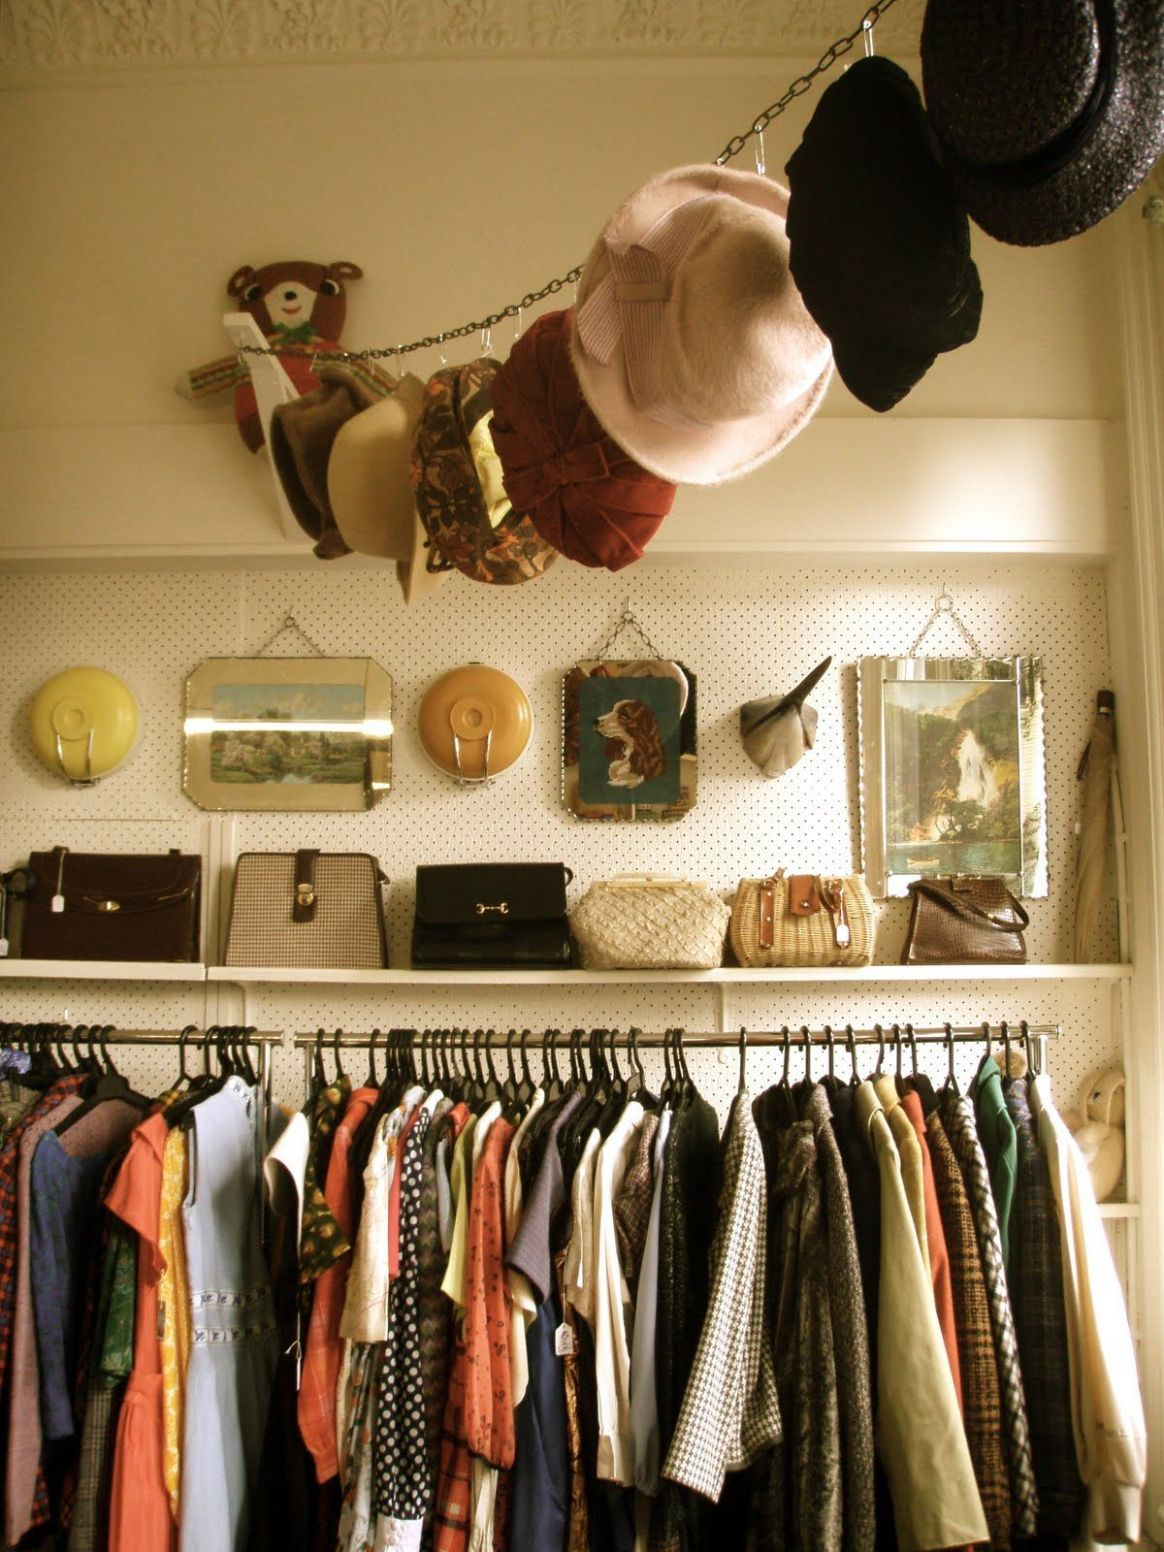 Learn to Love Your Closet, Big or Small - closet hook ideas